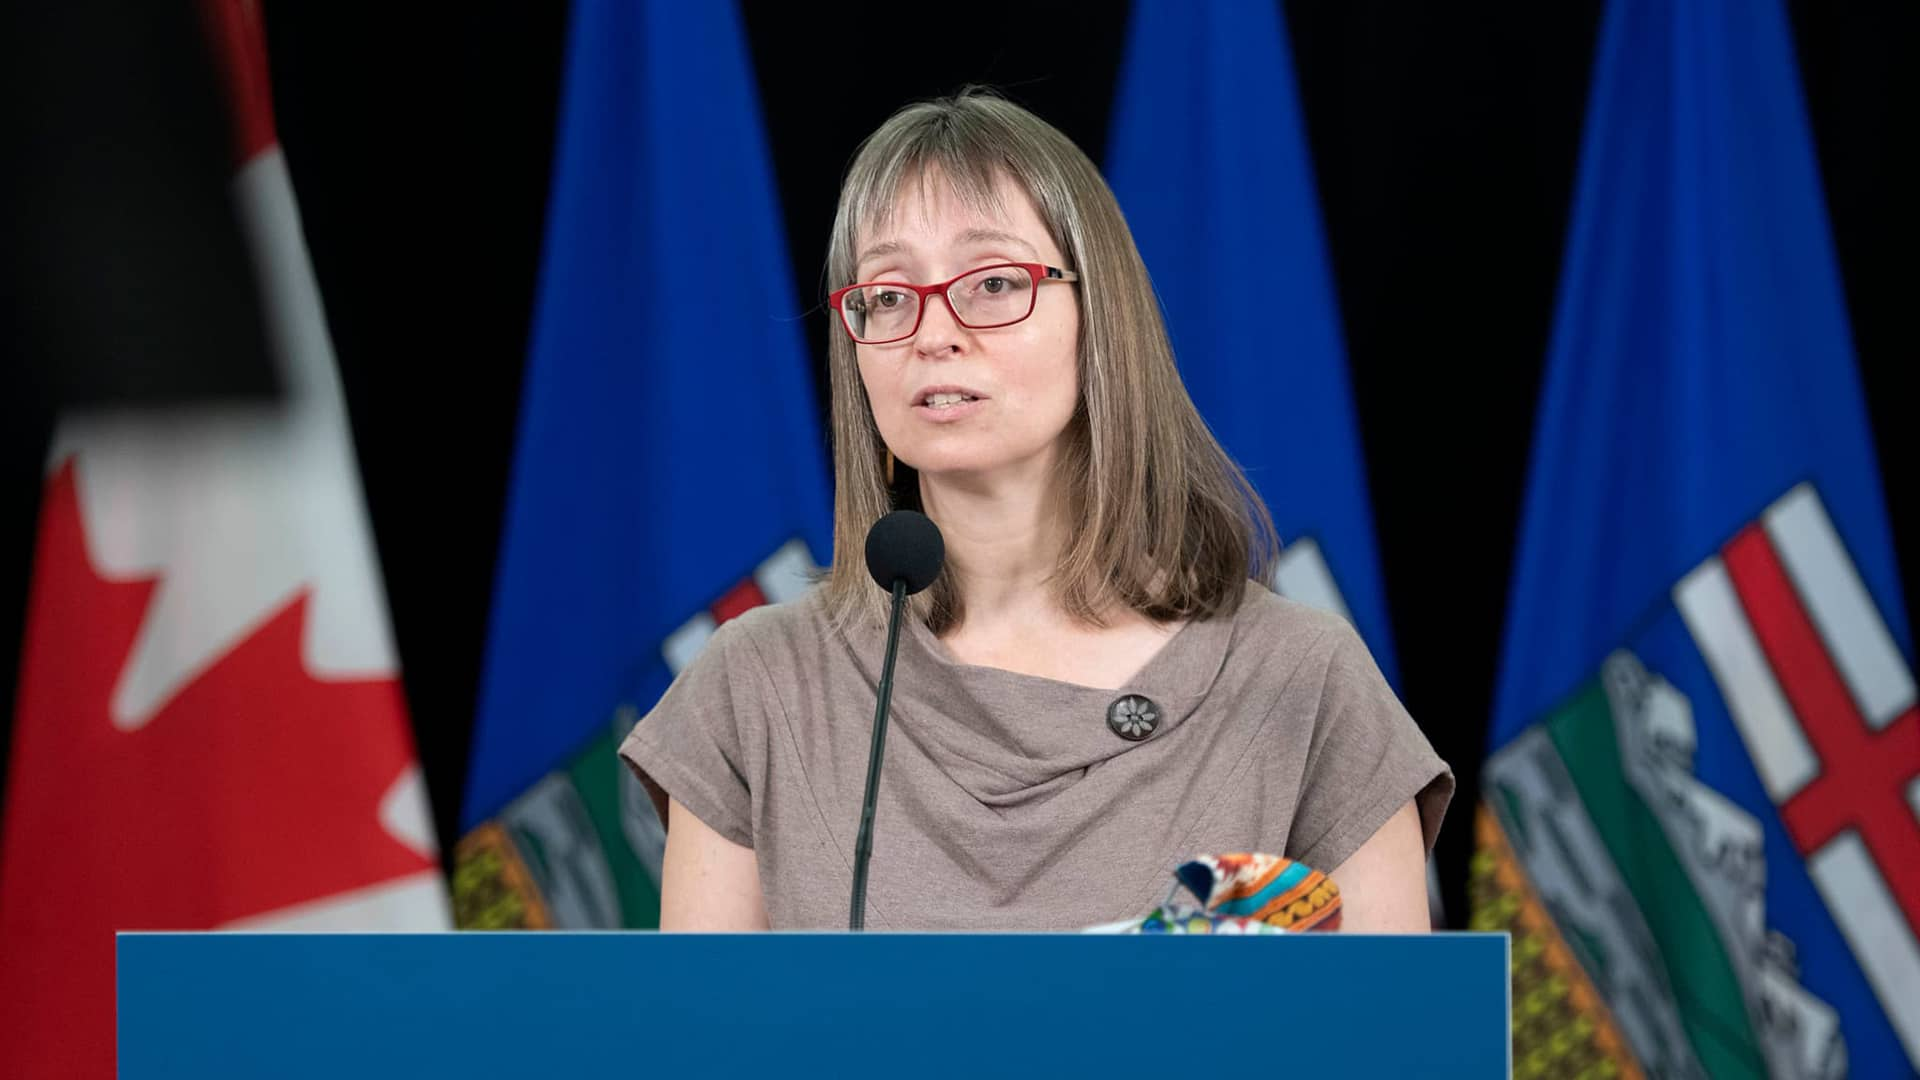 Hinshaw to hold first presser since Alberta unveiled new COVID-19 restrictions